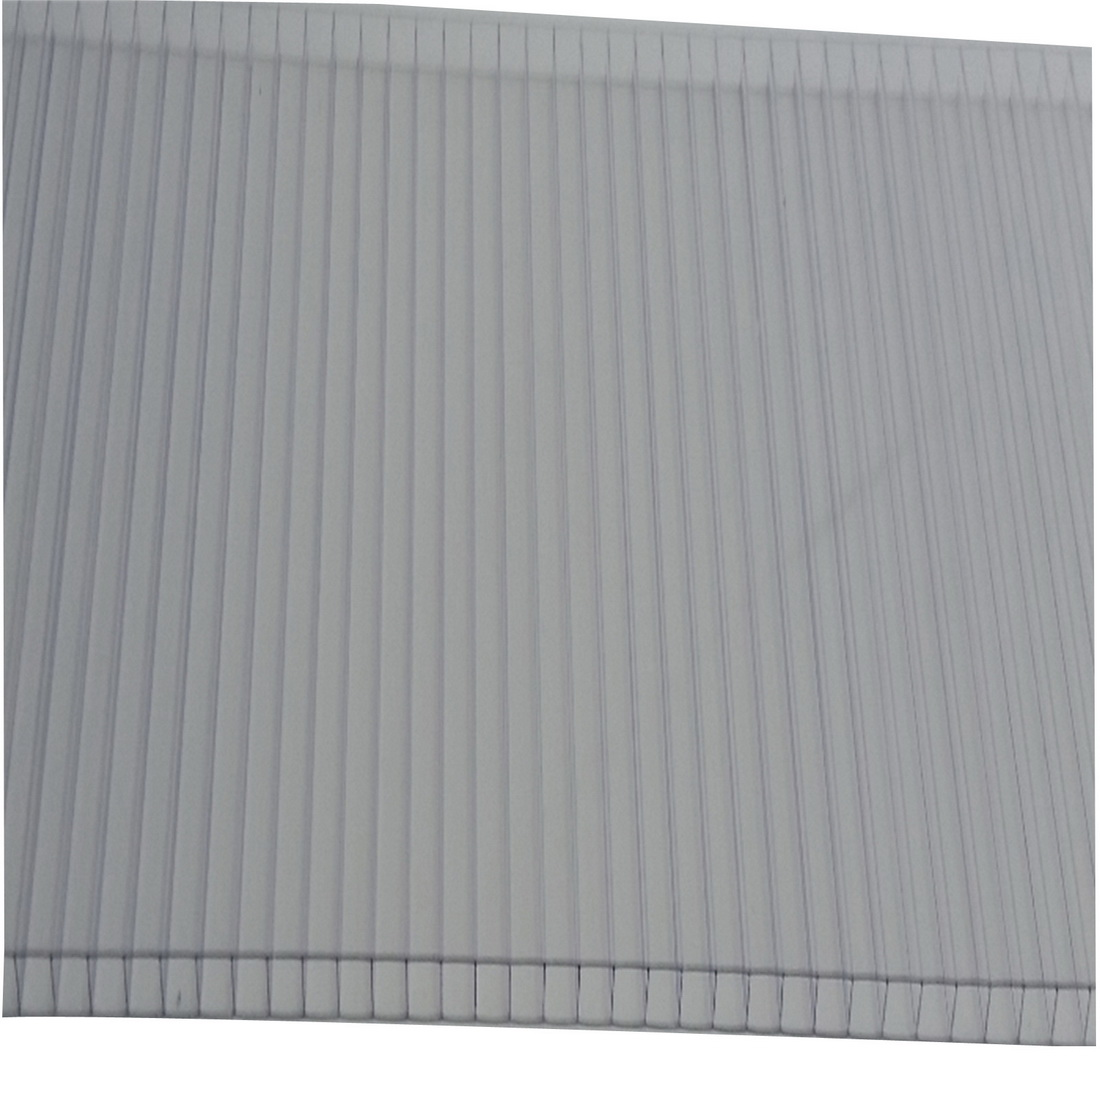 Twinwall Fluted Roofing 5490 x 1220 x 8mm Polycarbonate Clear 9418815042978